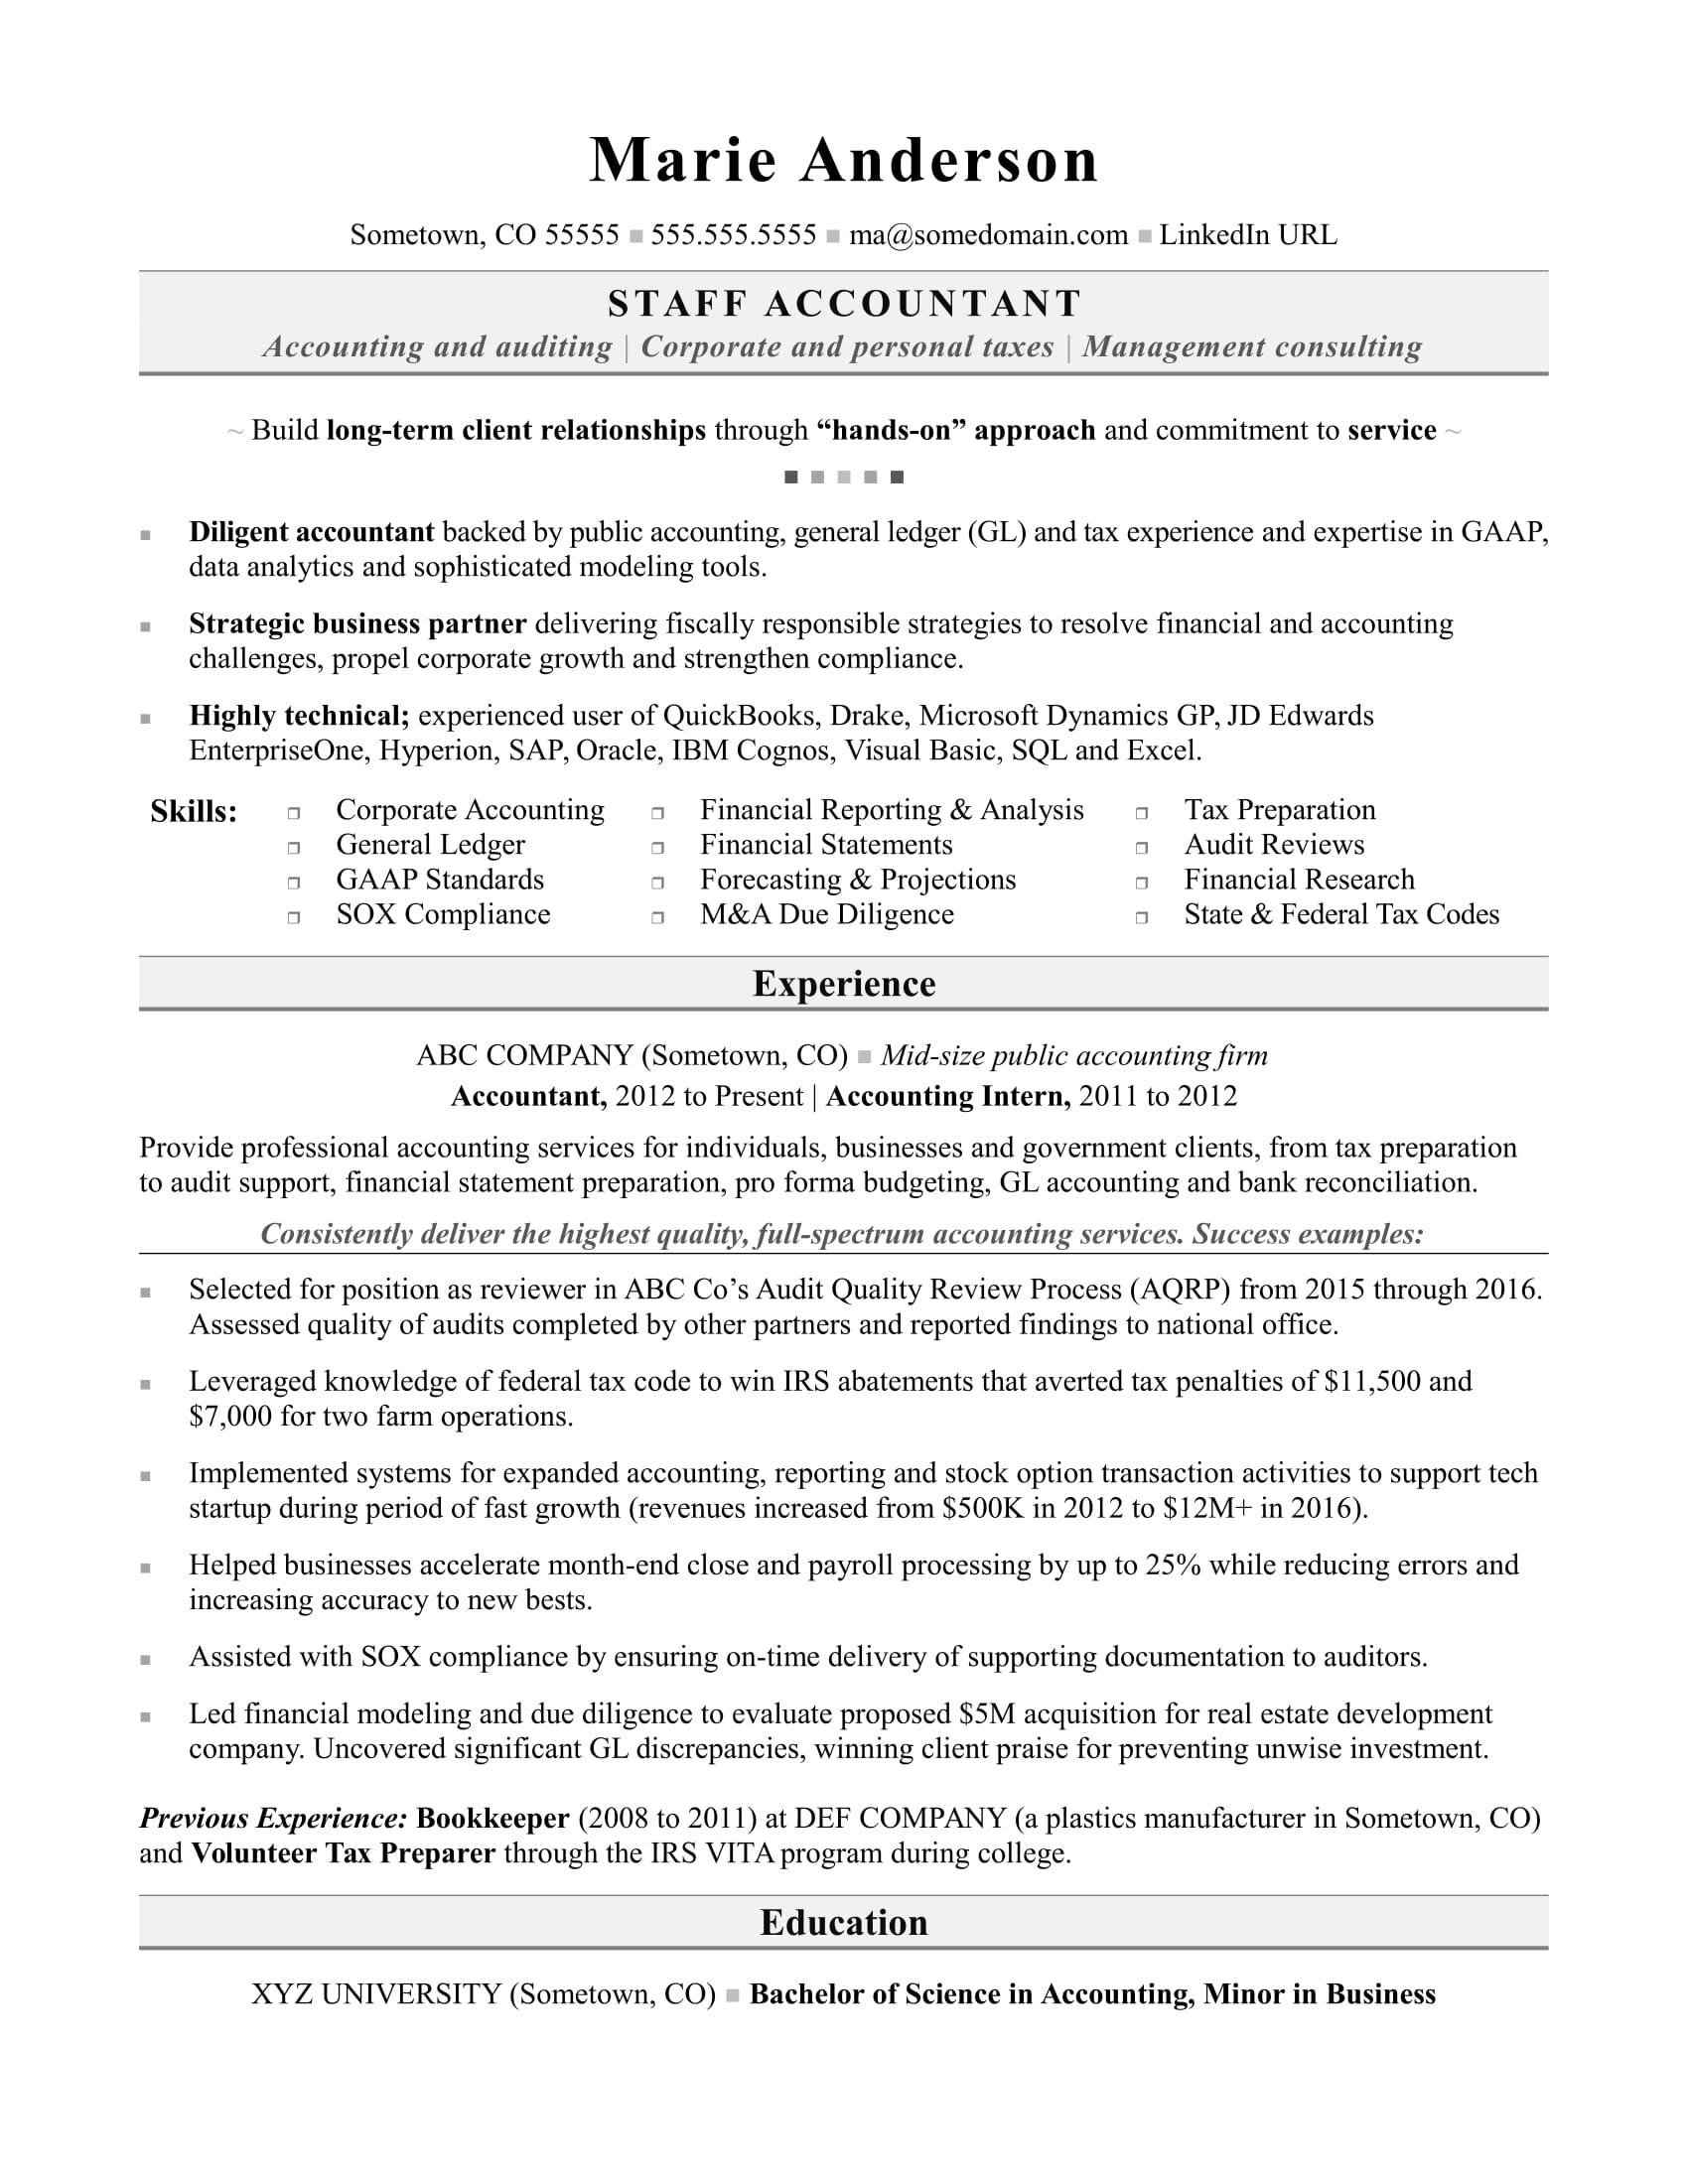 accounting resume sample monster latest format for accountant dental administration Resume Latest Resume Format For Accountant